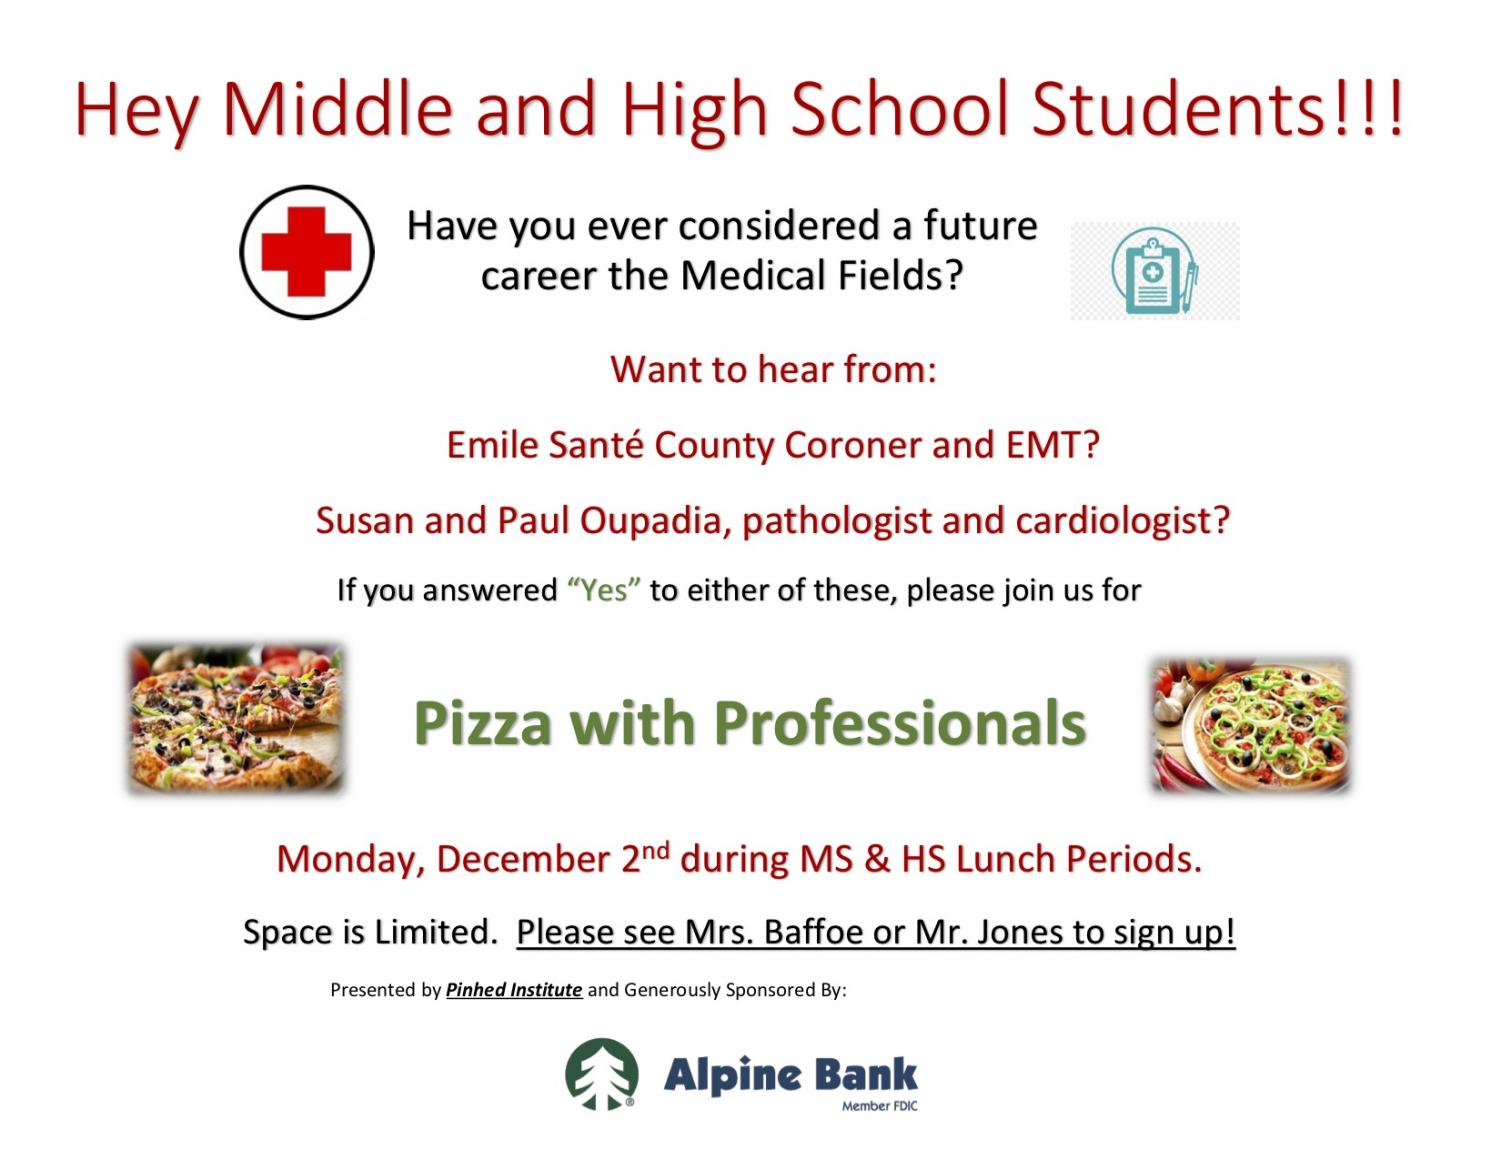 Pizza with Professionals, Monday, Dec. 2